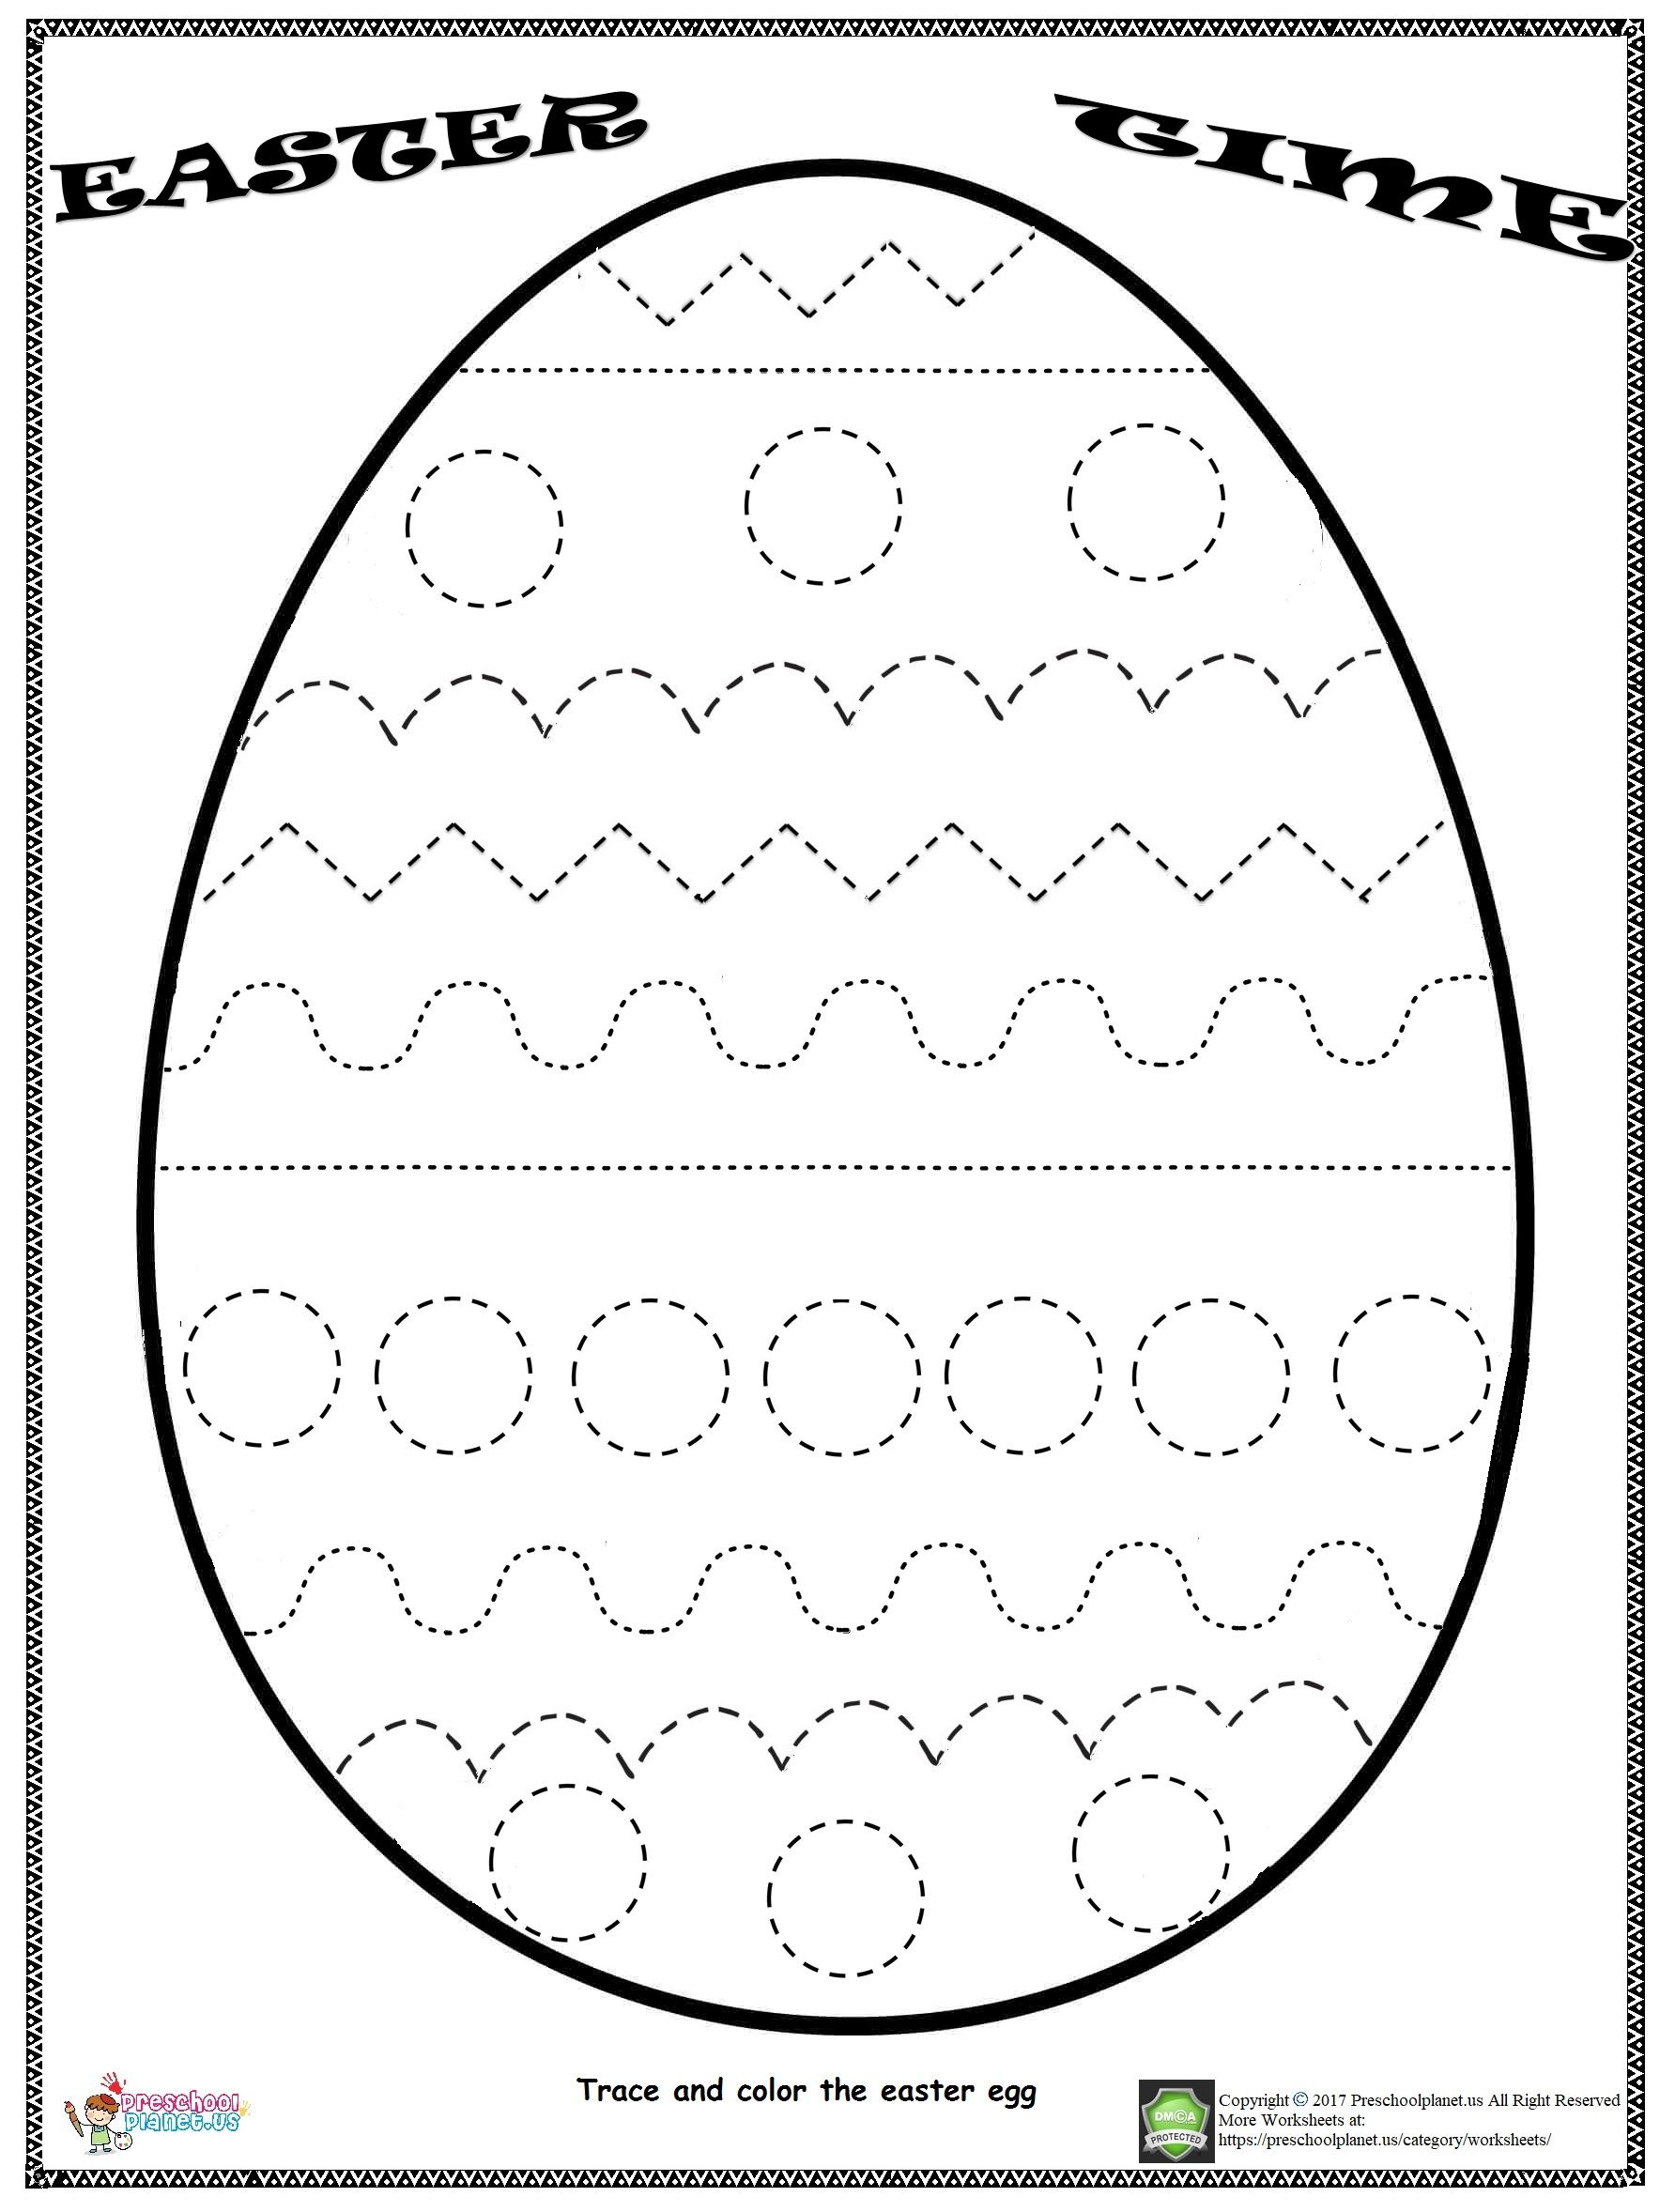 Easter Egg Trace Worksheet